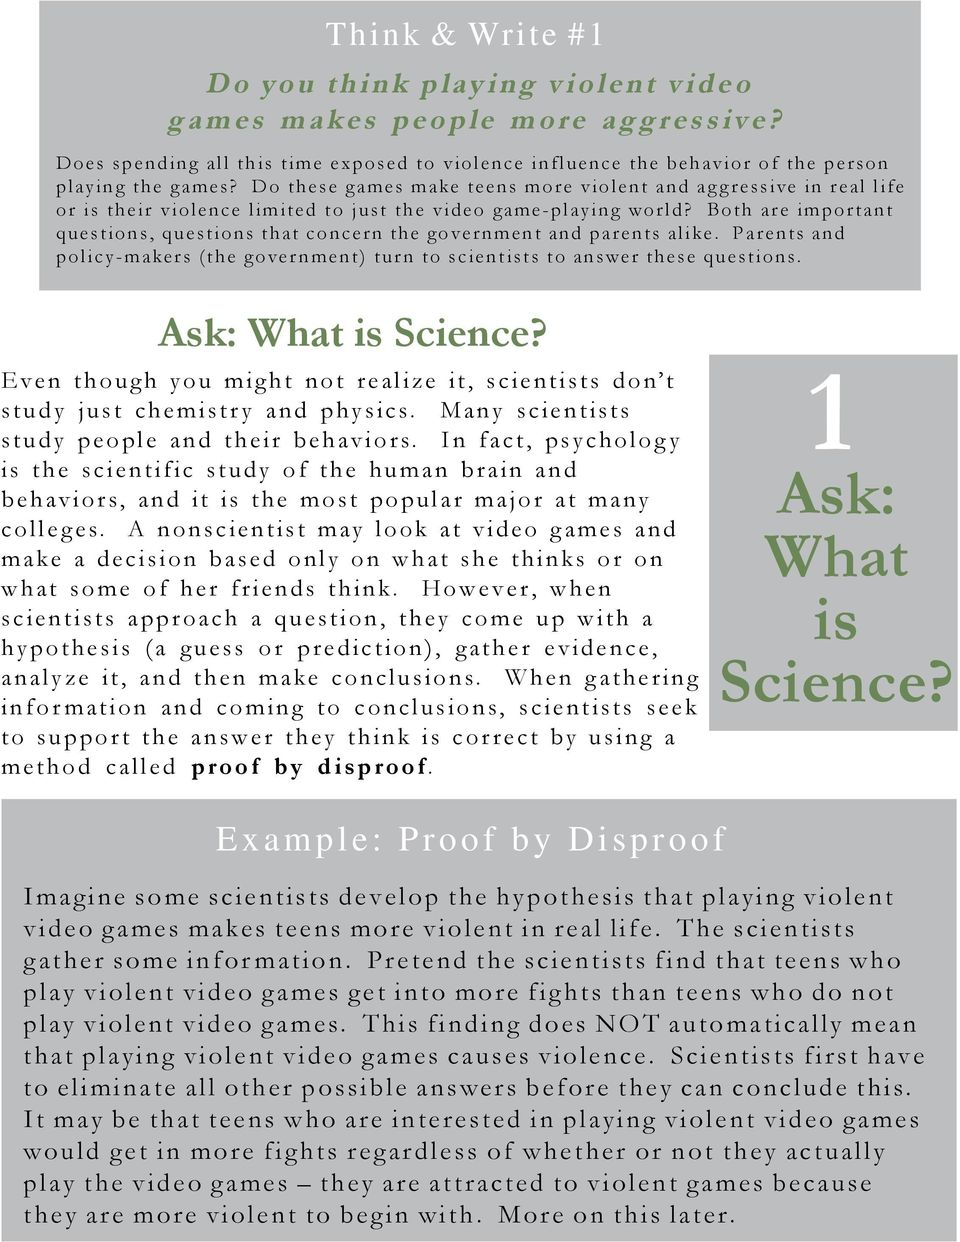 Both are important questions, questions that concern the government and parents alike. Parents and policy-makers (the government) turn to scientists to answer these questions. Ask: What is Science?